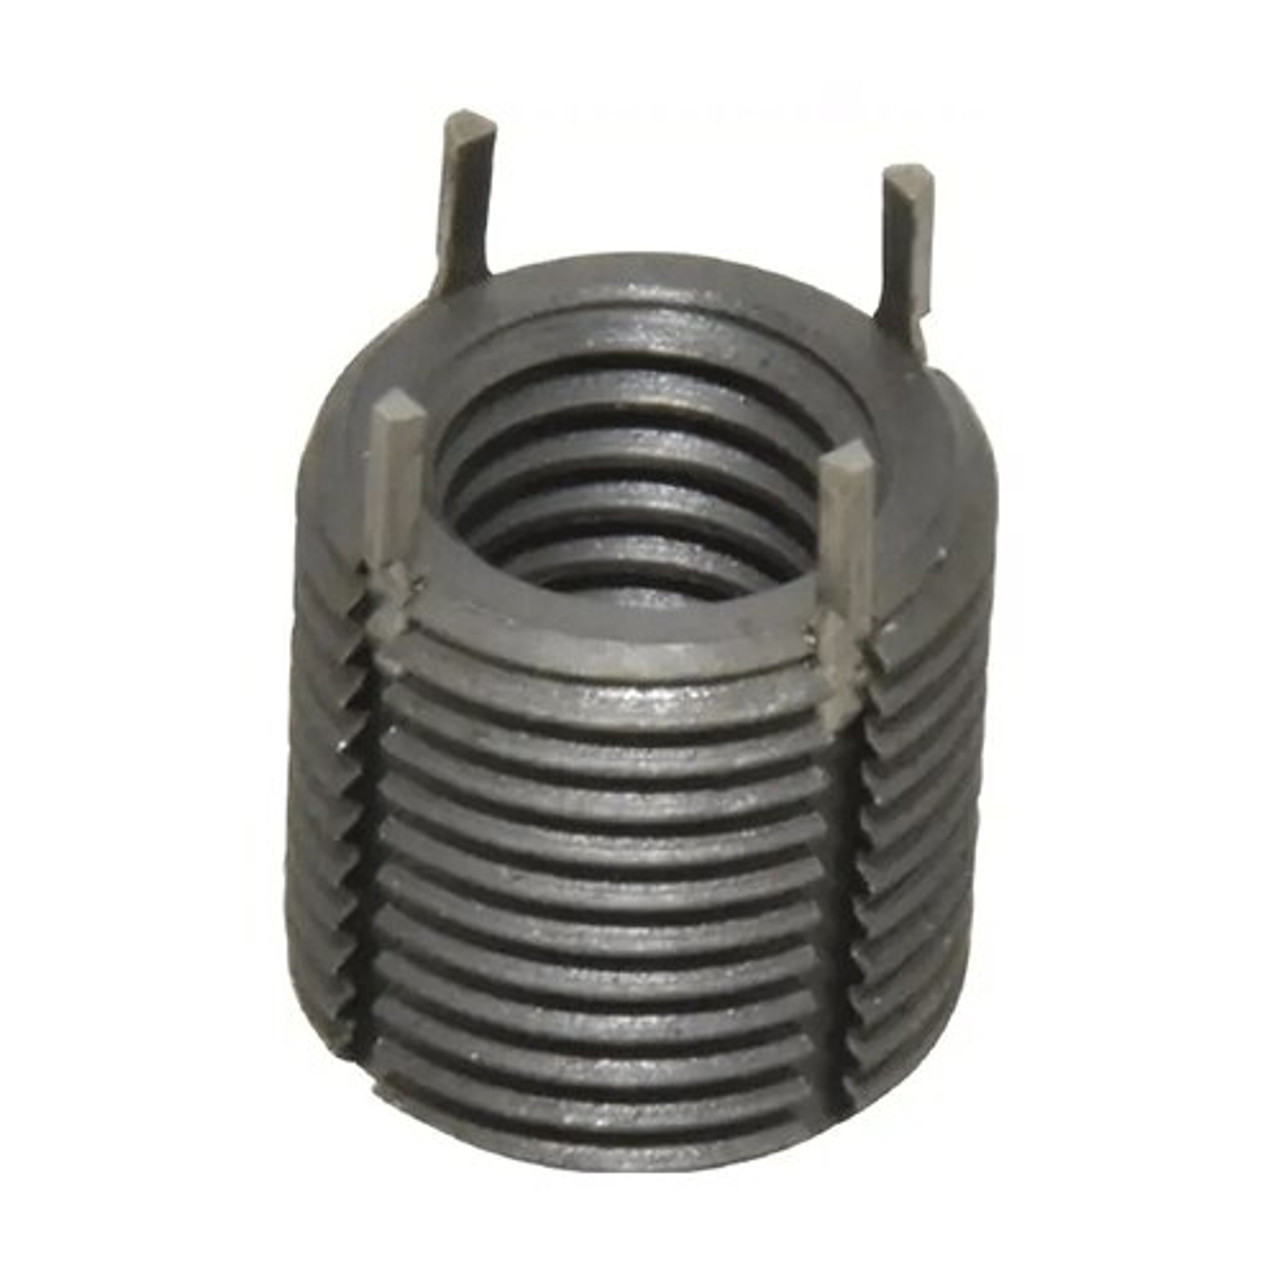 Jergens 1/4 In-20 TPI Thread Size 0.3700 In Length Carbon Steel Keylocking Threaded Insert EDP: 25922